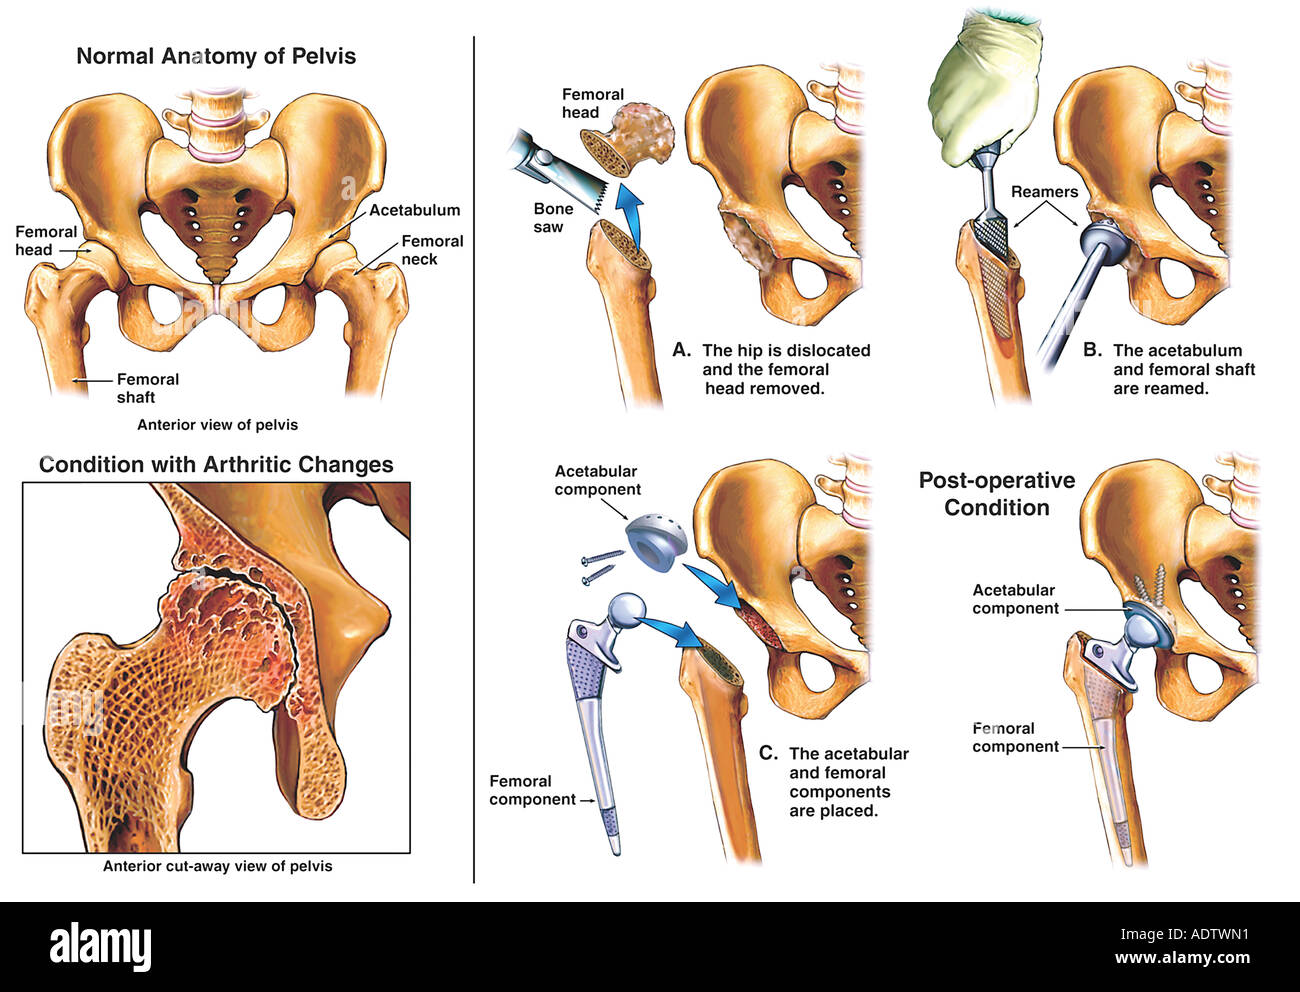 Total Hip Replacement Surgery Stock Photo: 7710480 - Alamy